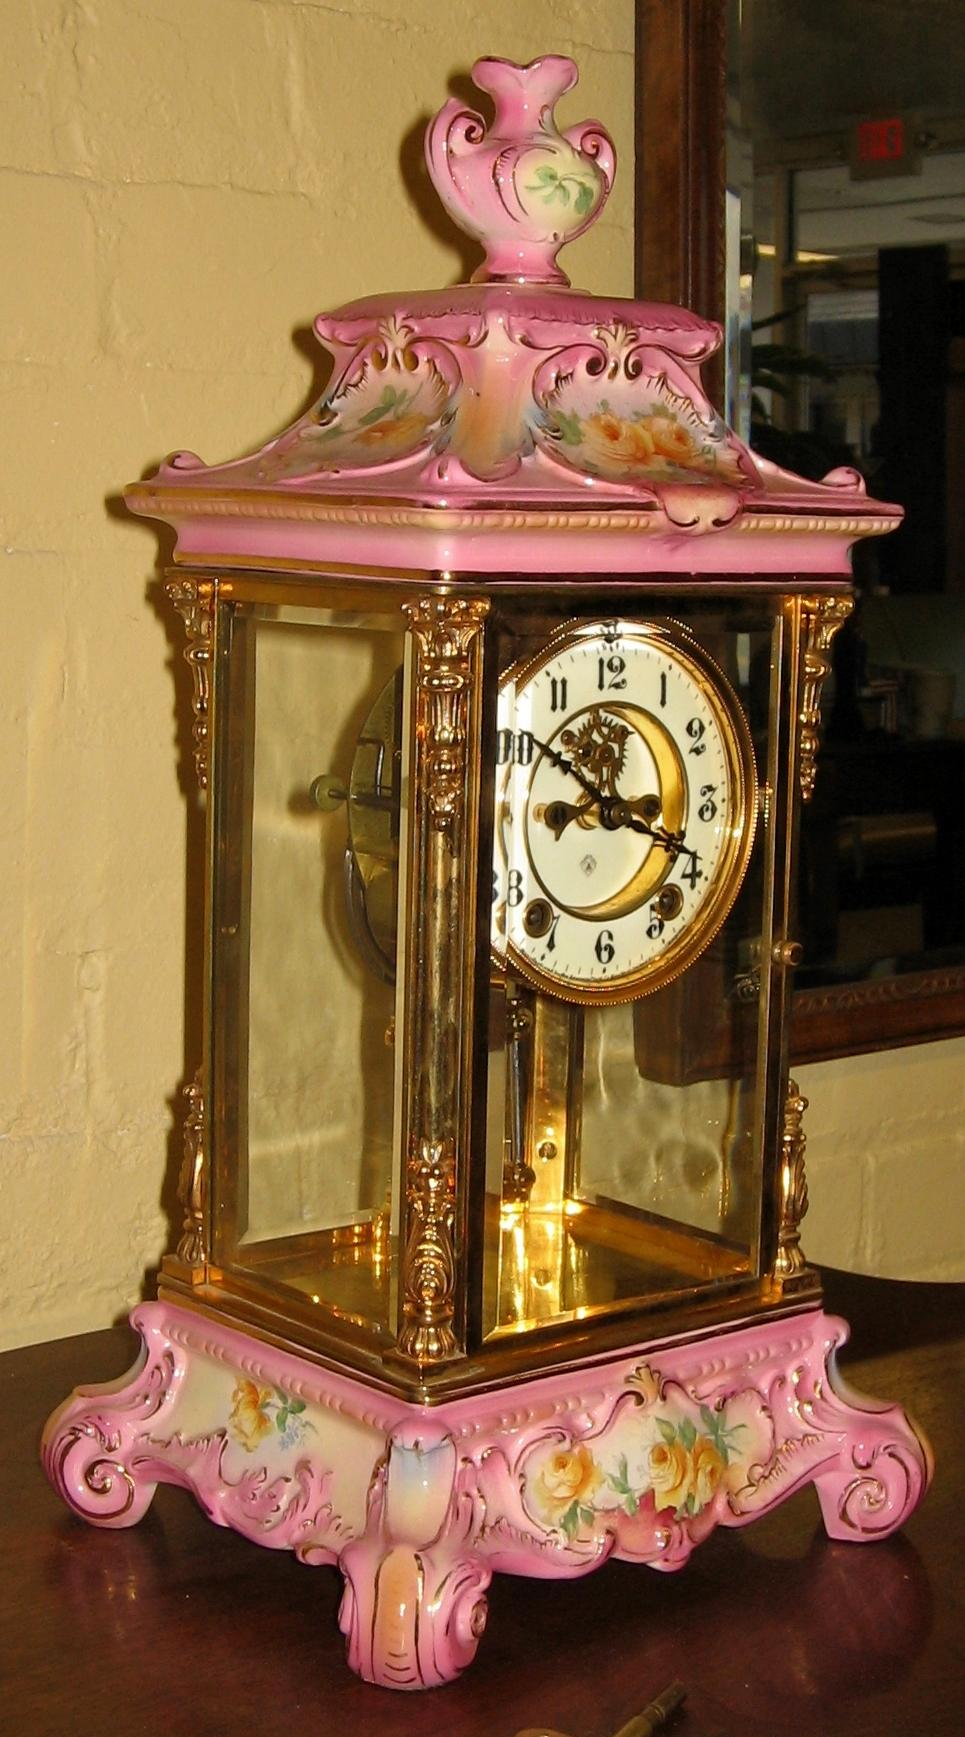 ansonia royal bonn crystal regulator 1 clock from. Black Bedroom Furniture Sets. Home Design Ideas